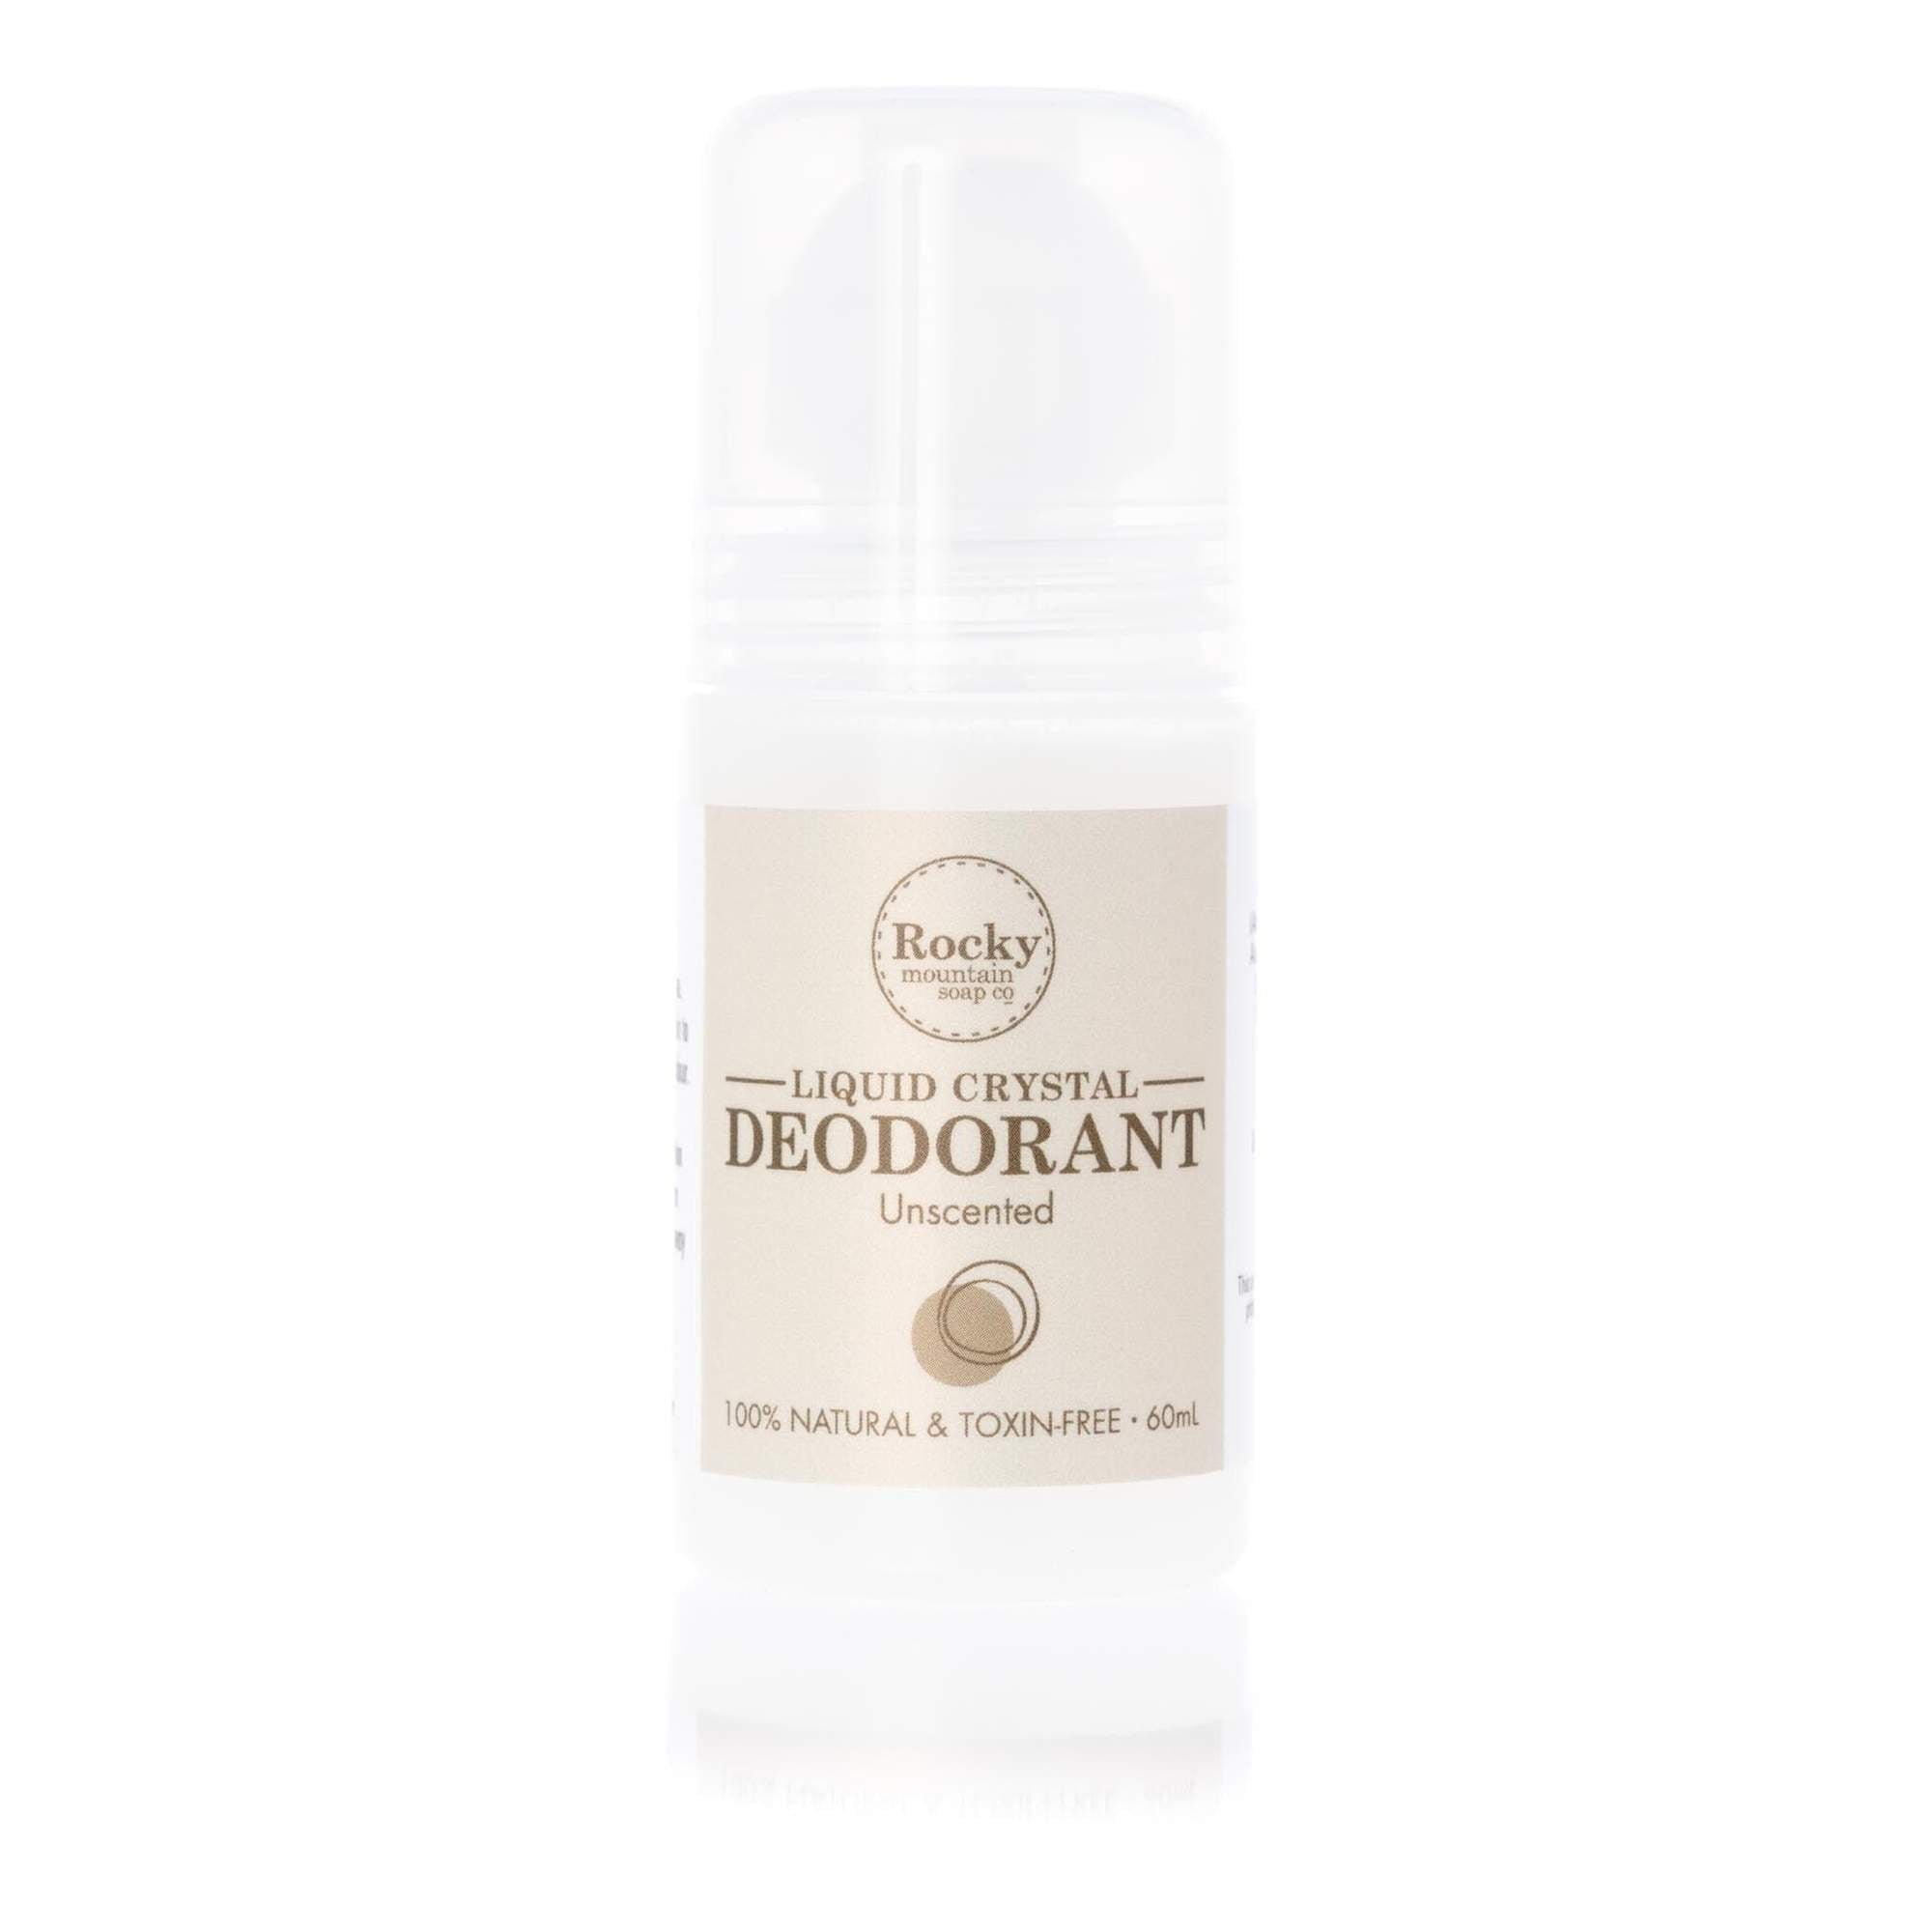 Unscented Deodorant by Rocky Mountain Soap Company